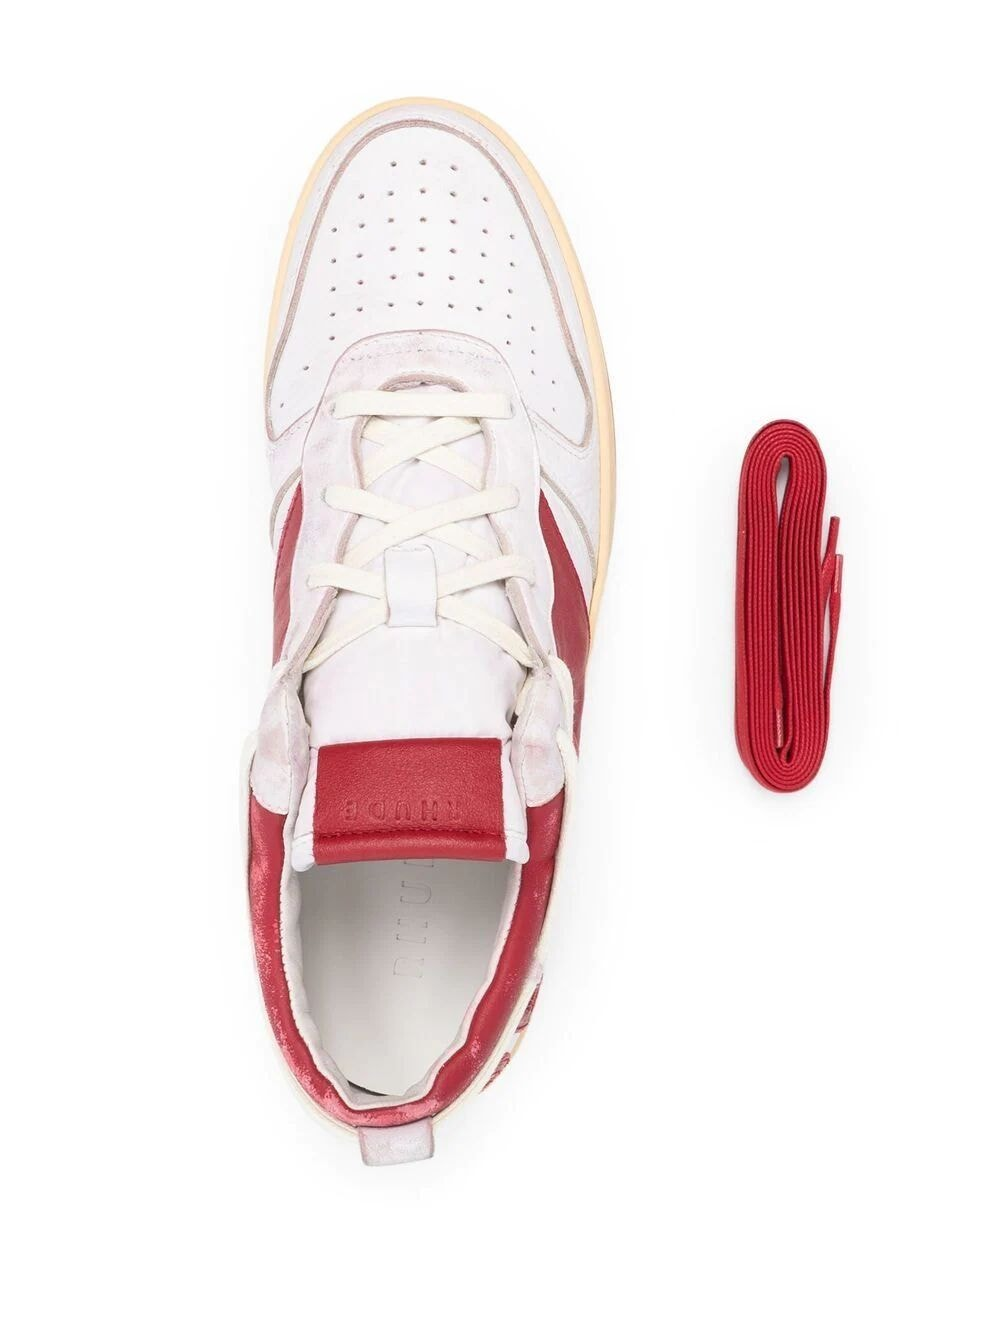 White and Red Low Top Sneakers